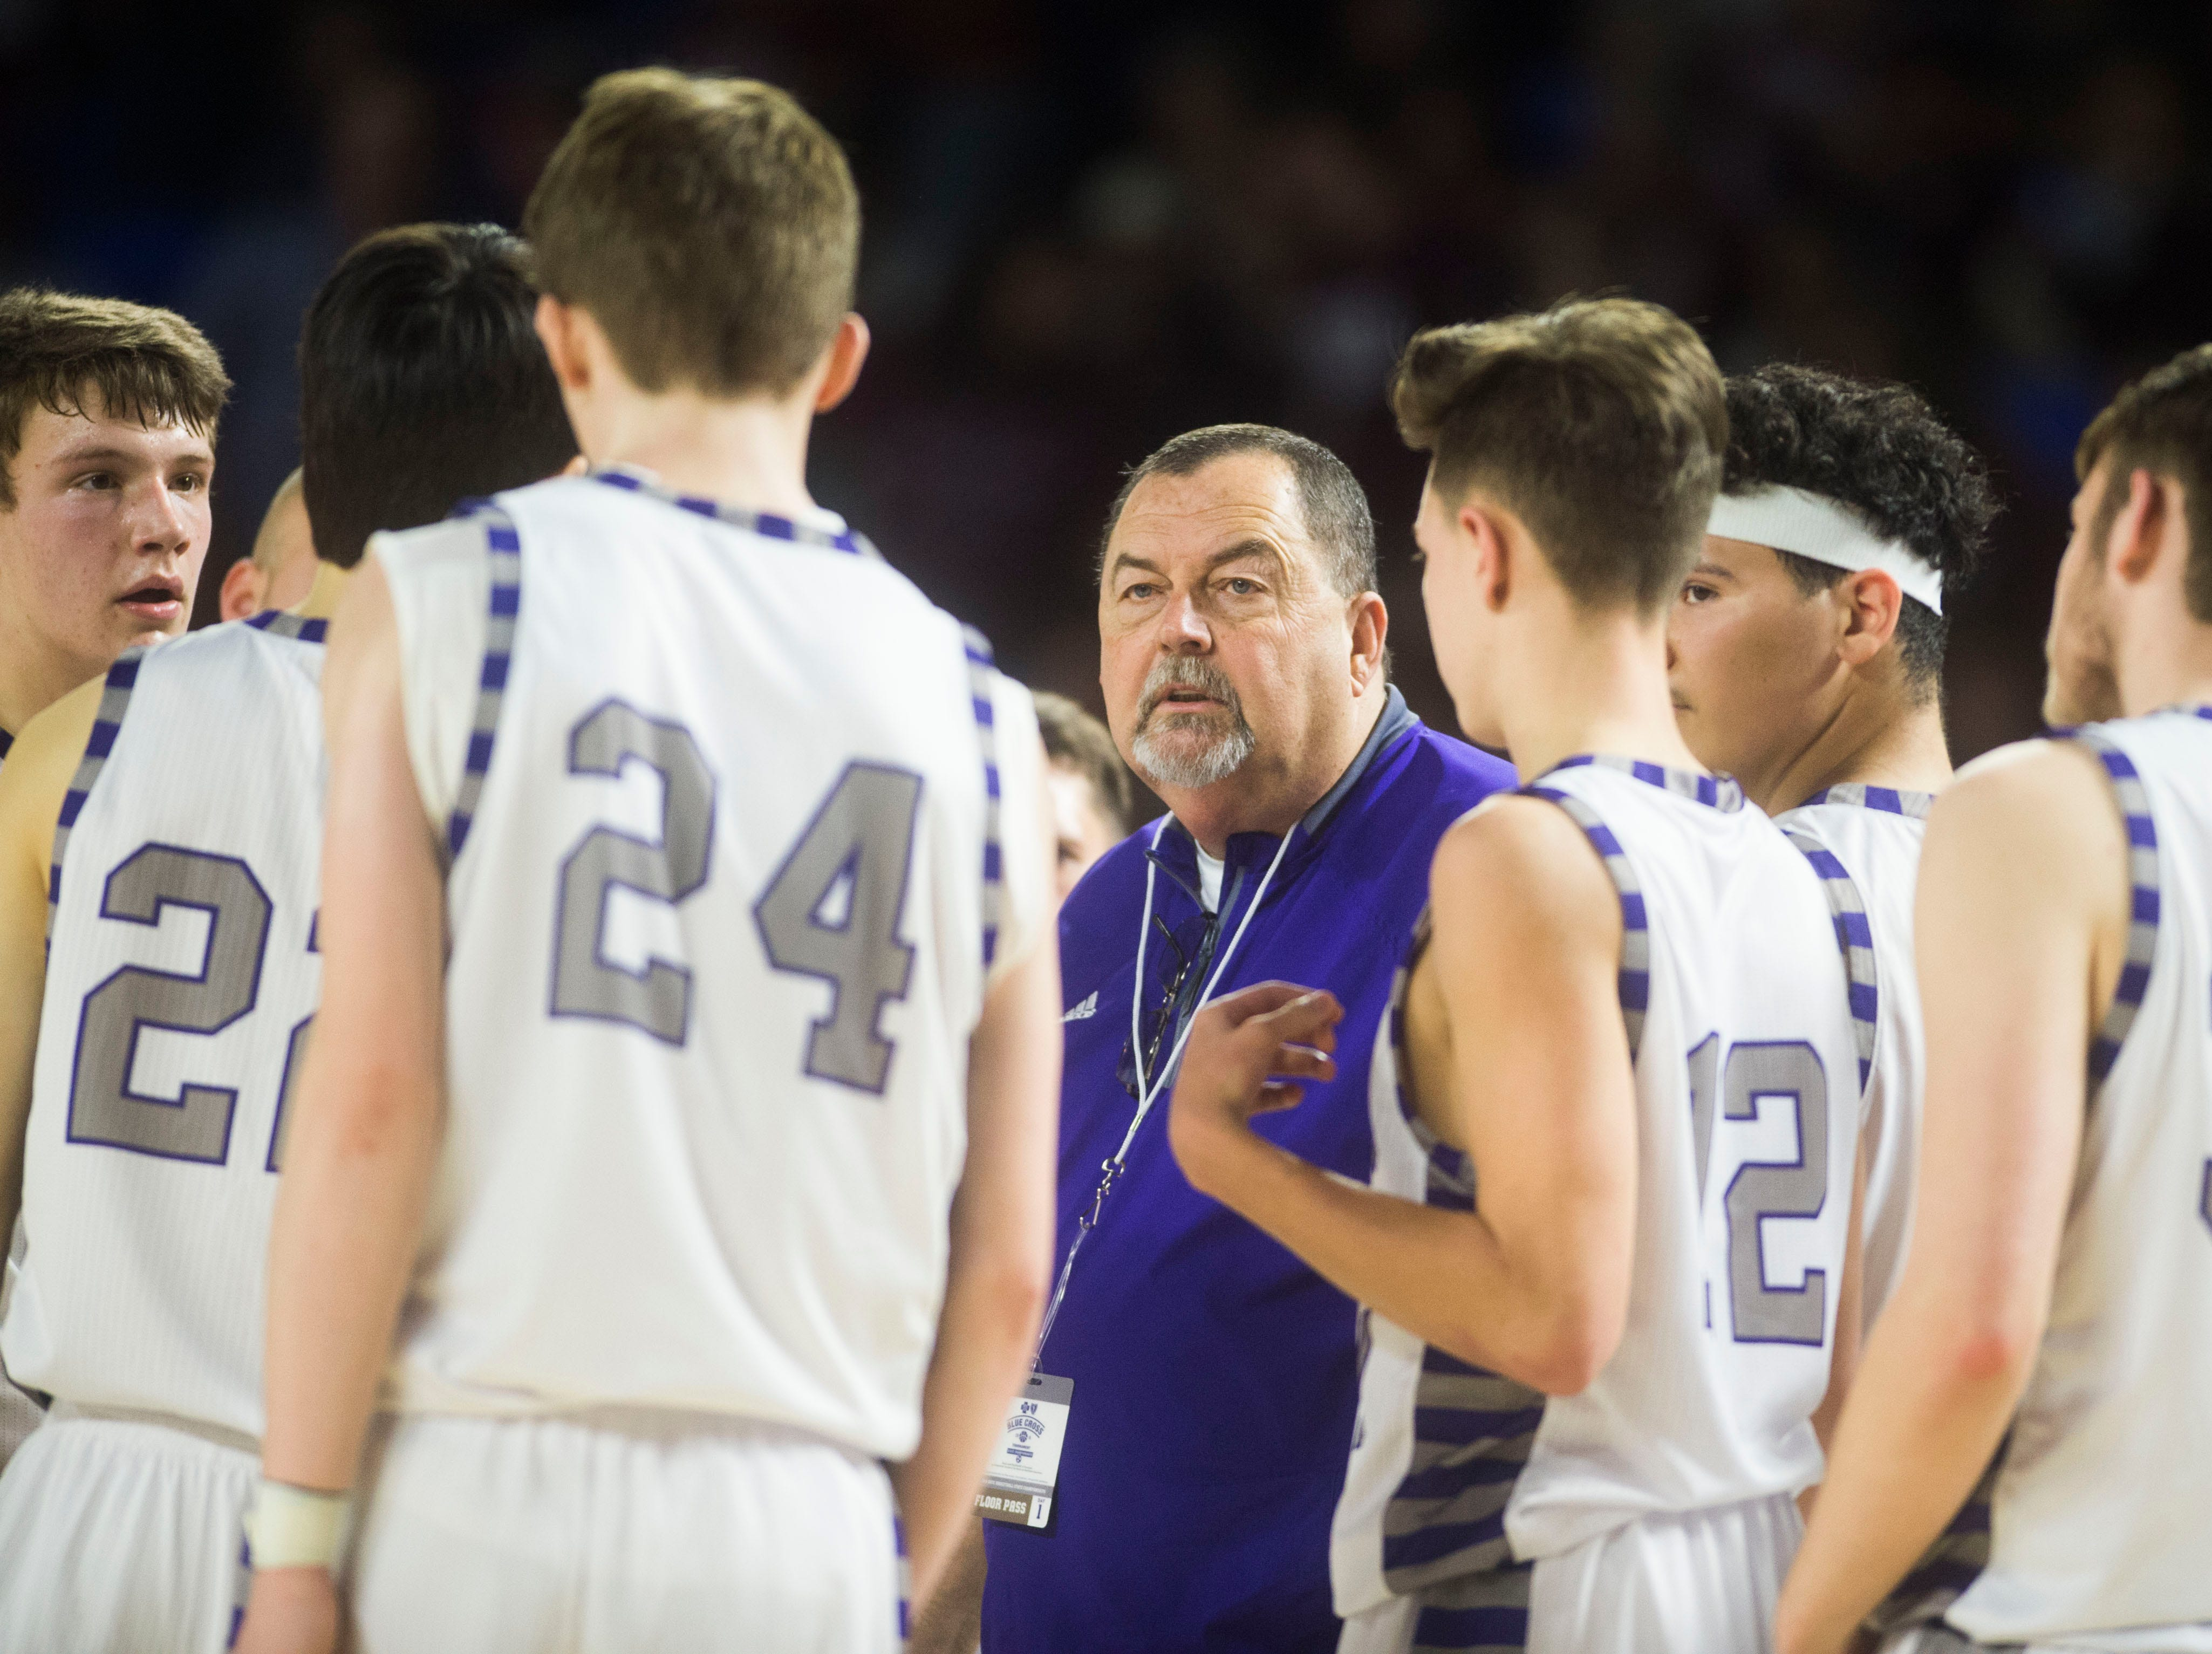 Sevier's head coach Ken Wright speaks to players during a TSSAA AAA state quarterfinal game between Sevier County and Whitehaven at the Murphy Center in Murfreesboro, Wednesday, March 13, 2019.